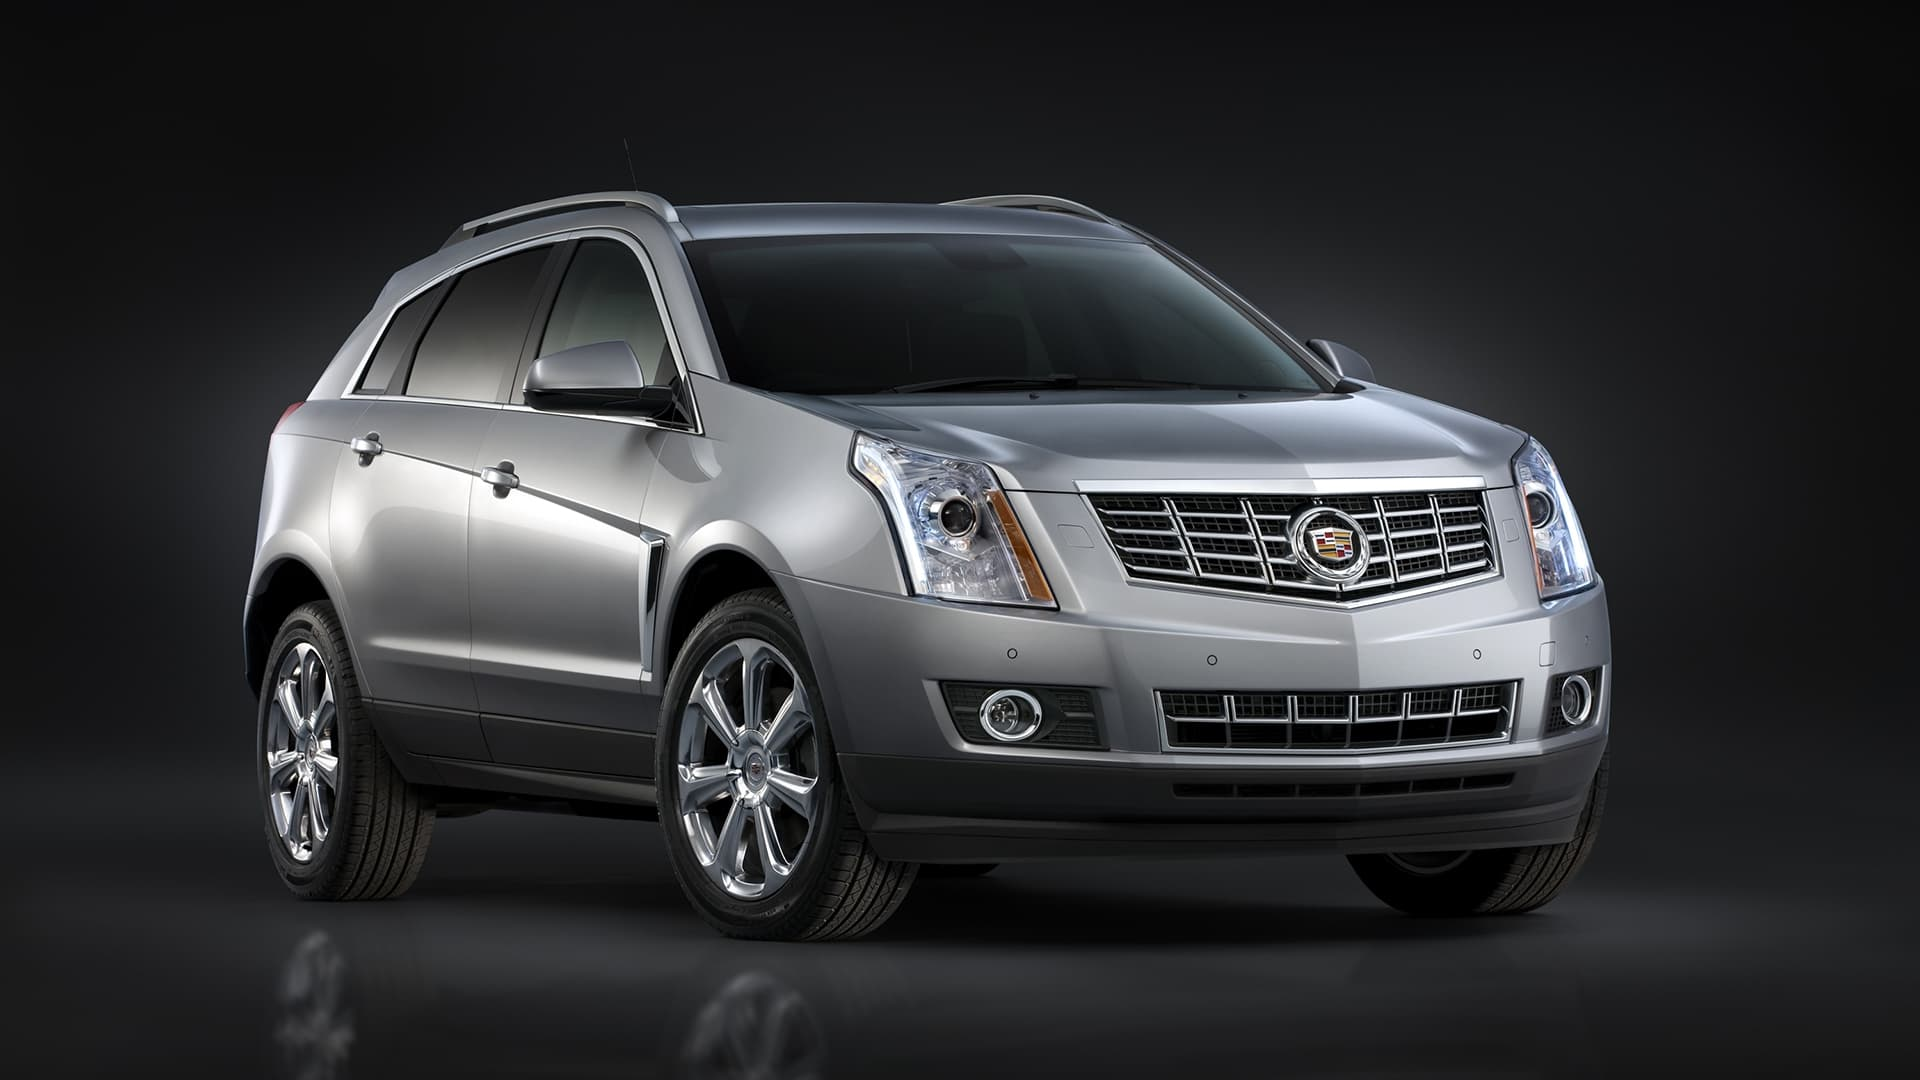 cadillac srx wallpapers hd